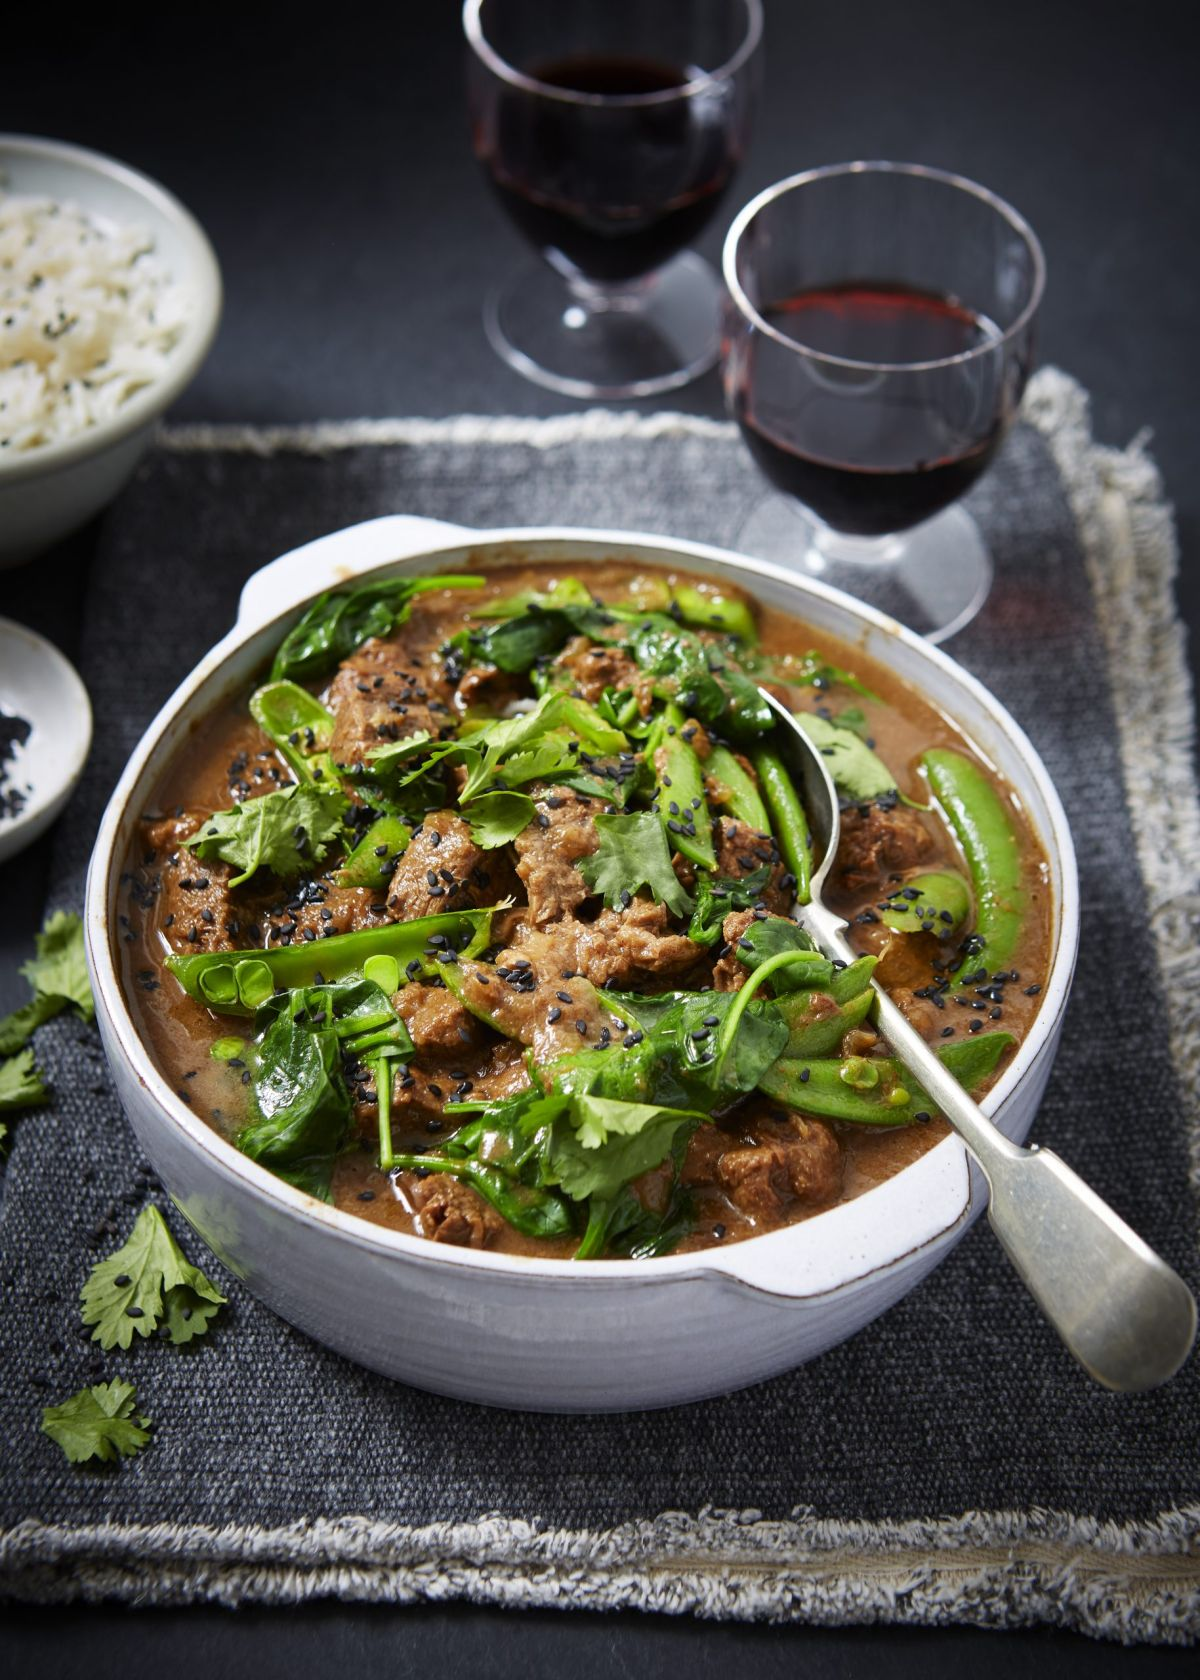 This sticky tamarind curry is a real crowd pleaser that's perfect to warm everyone up